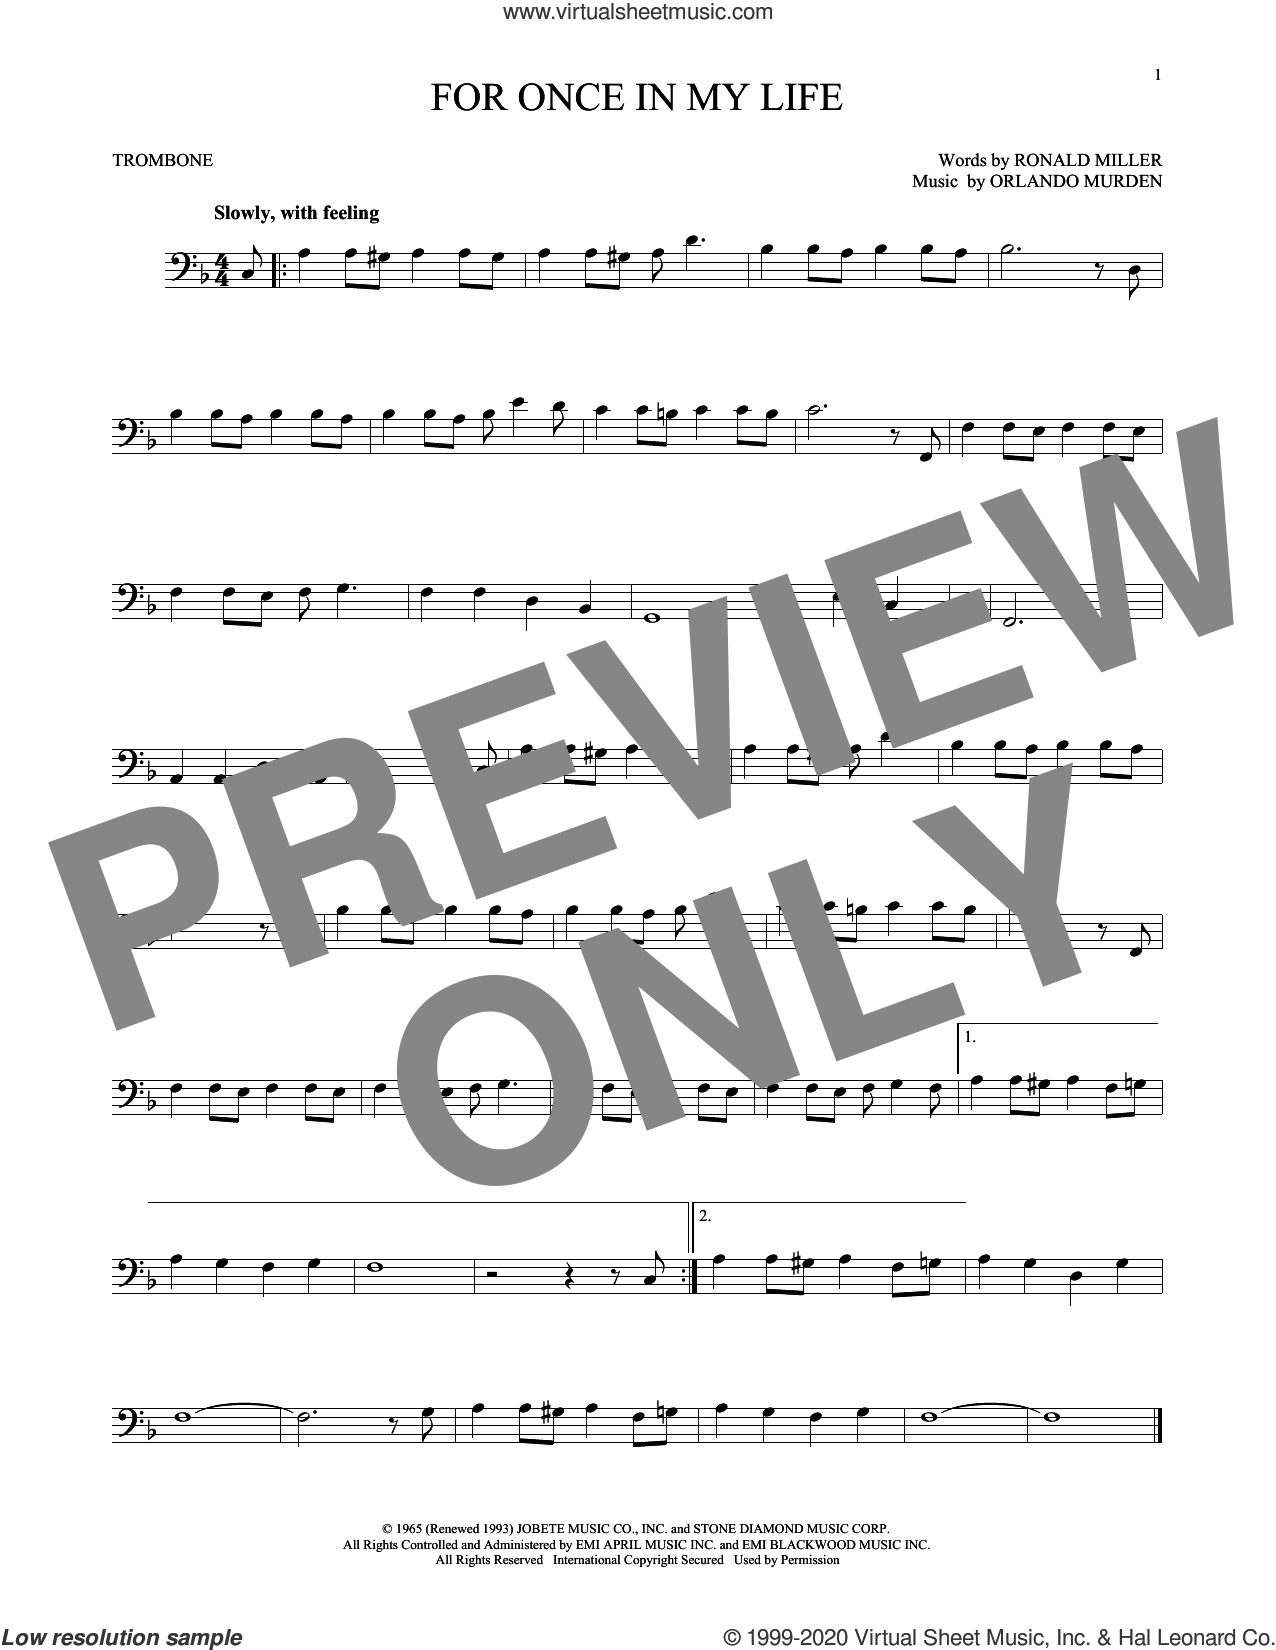 For Once In My Life sheet music for trombone solo by Stevie Wonder, Orlando Murden and Ron Miller, intermediate skill level